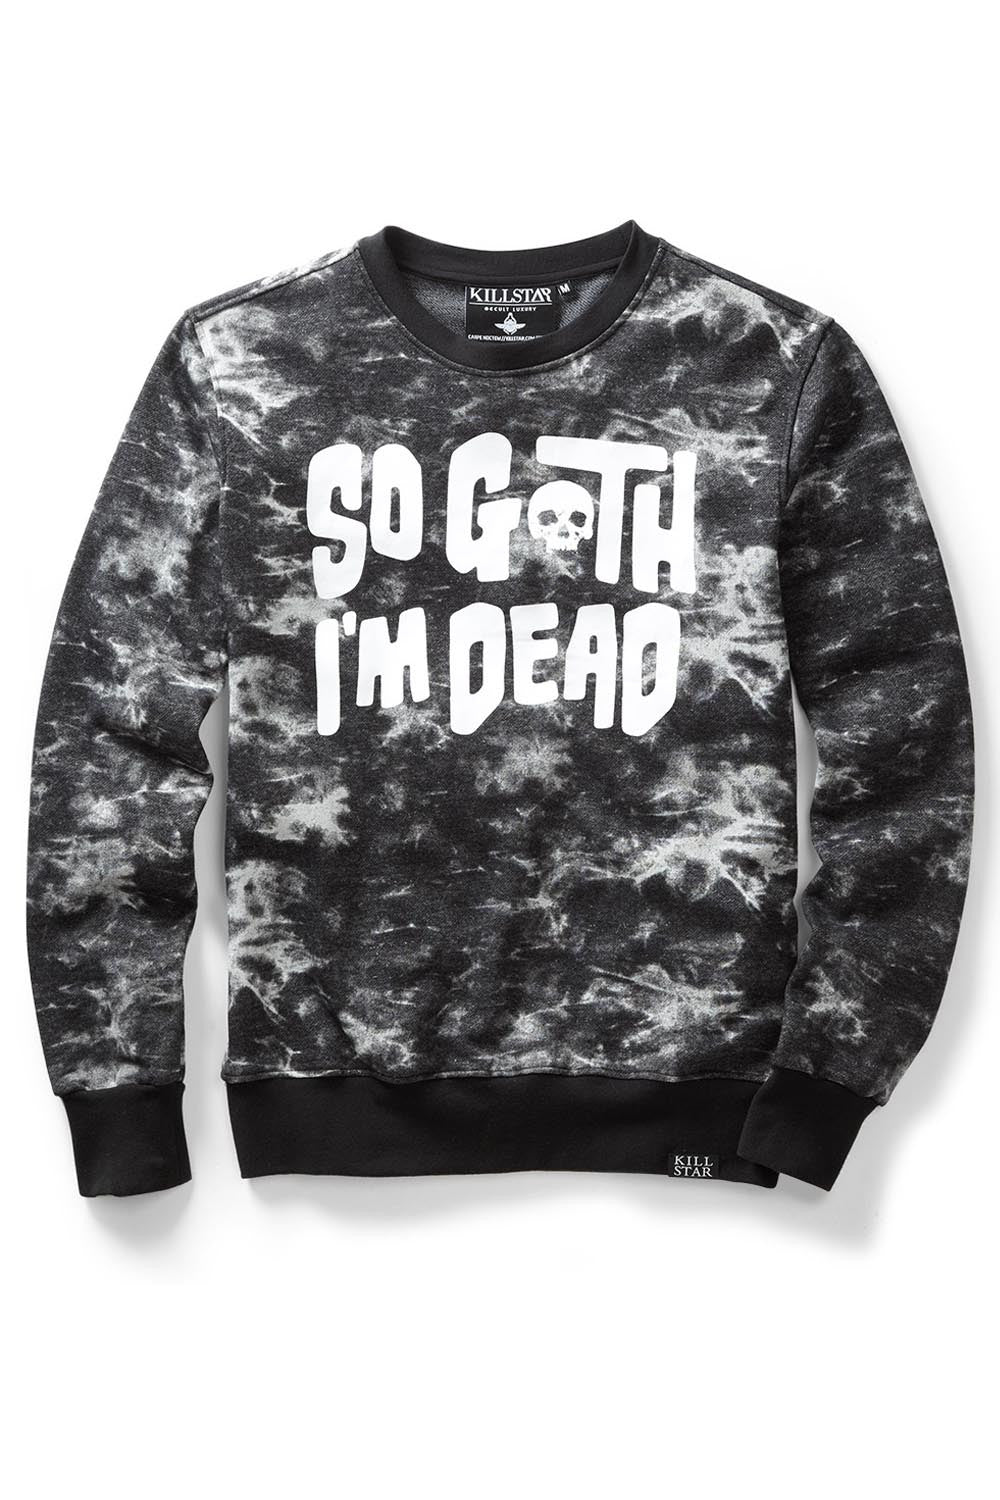 So Goth Sweatshirt [TIEDYE]